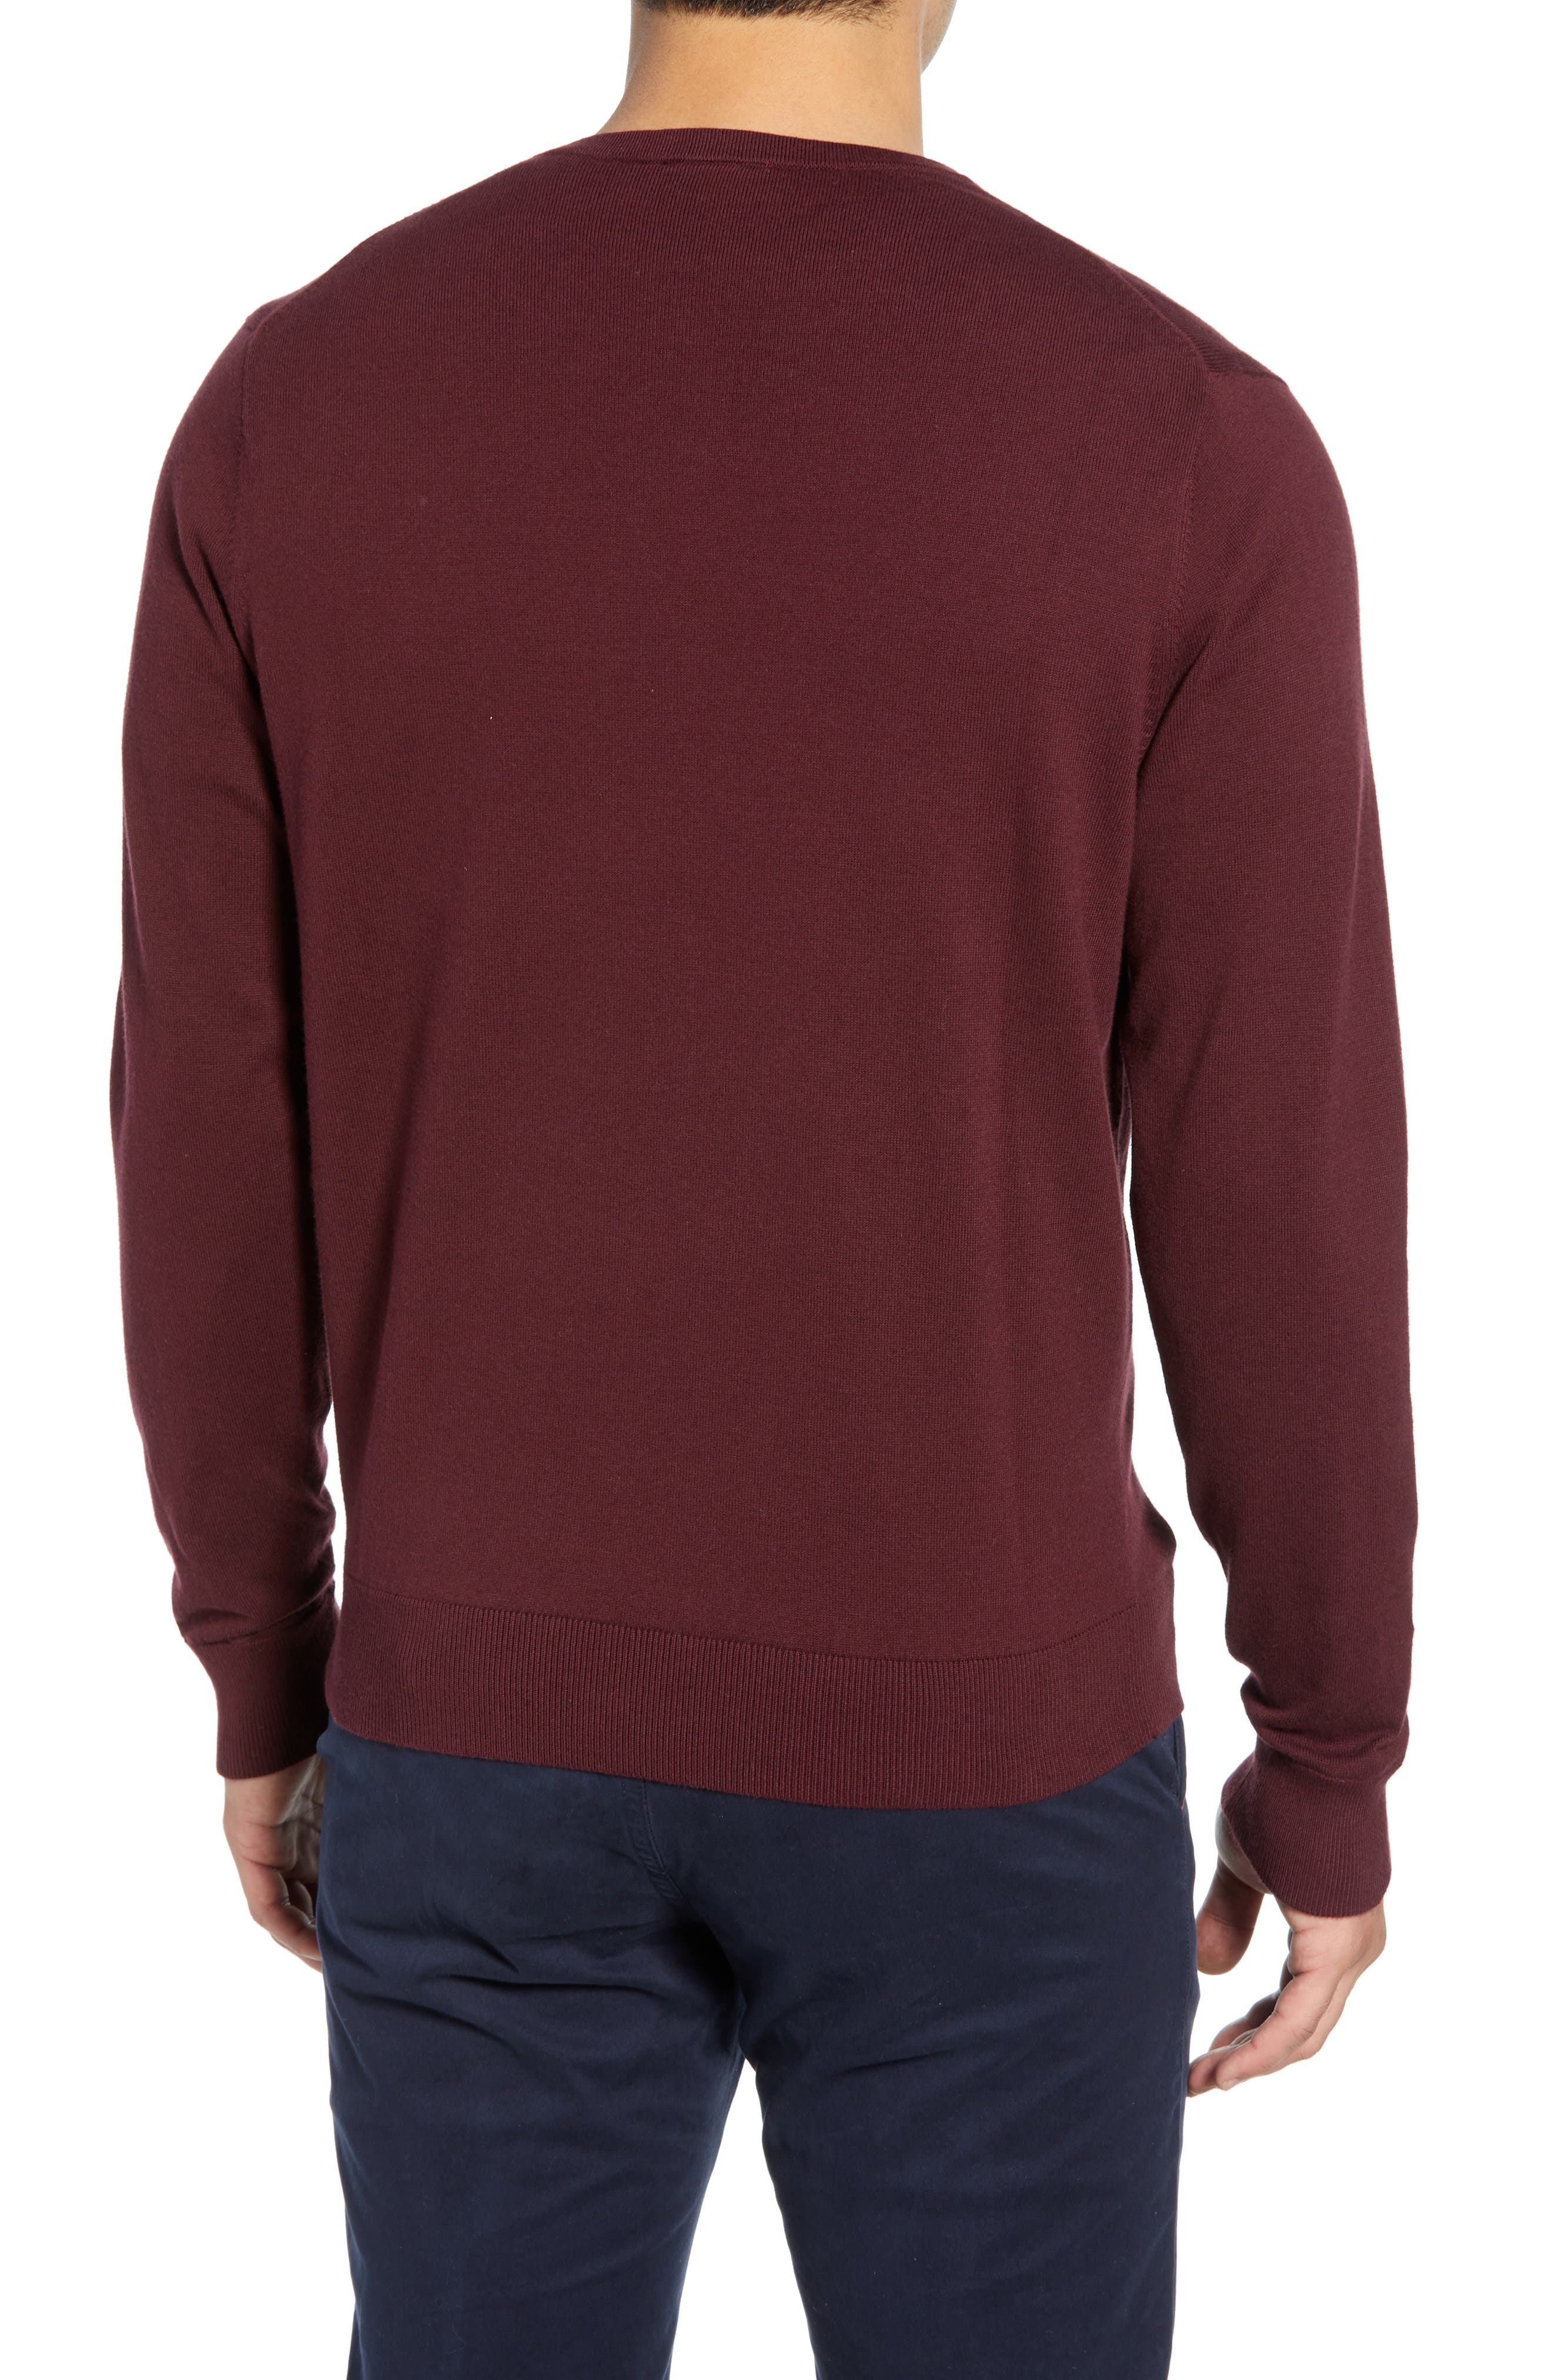 CUTTER & BUCK, Lakemont V-Neck Sweater, Alternate thumbnail 2, color, BORDEAUX